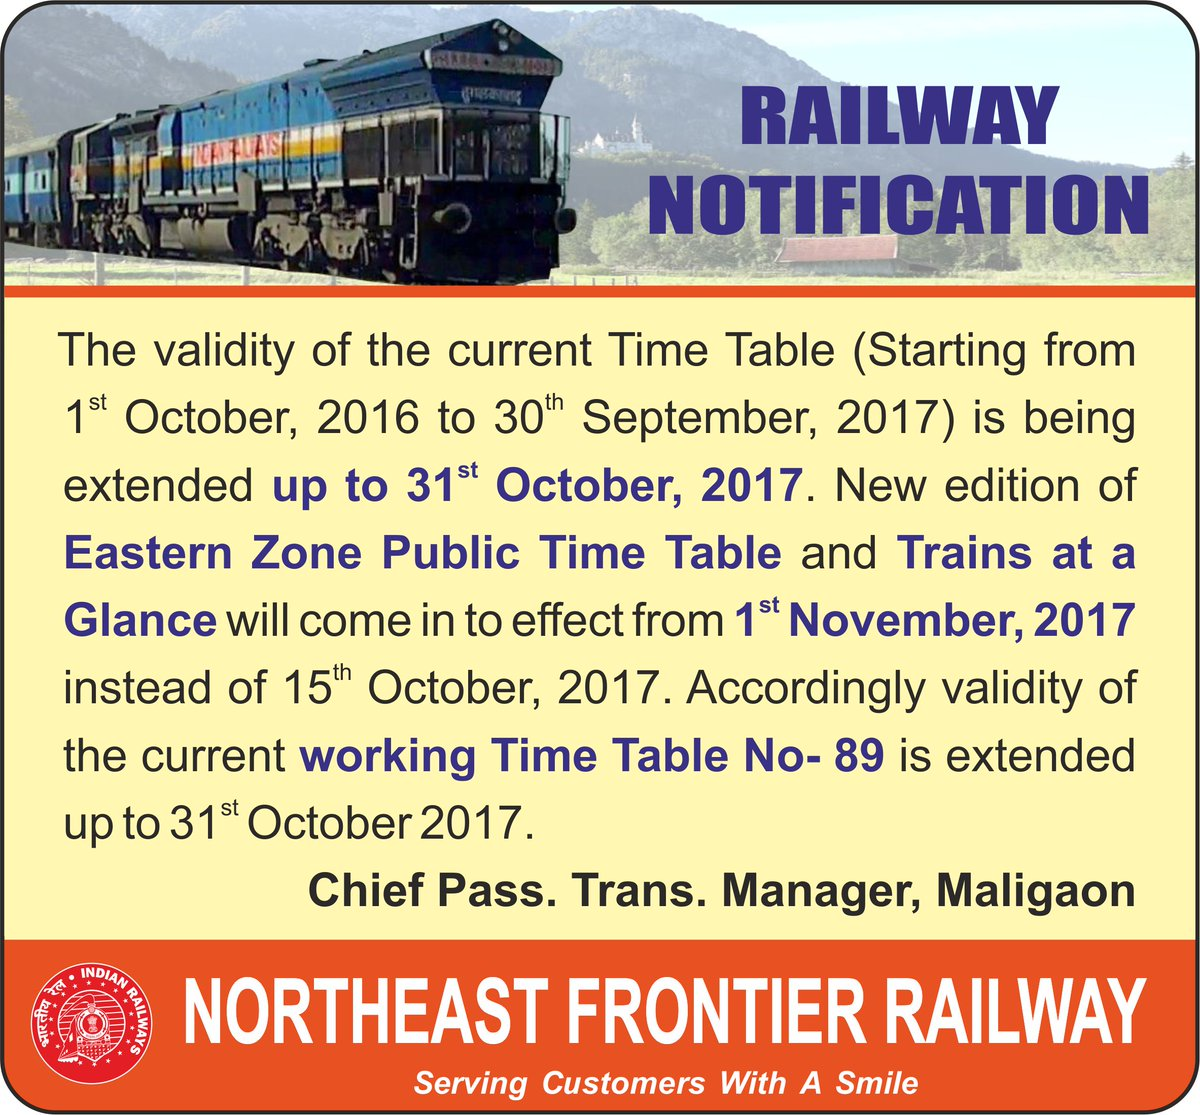 N  F  Railway on Twitter: